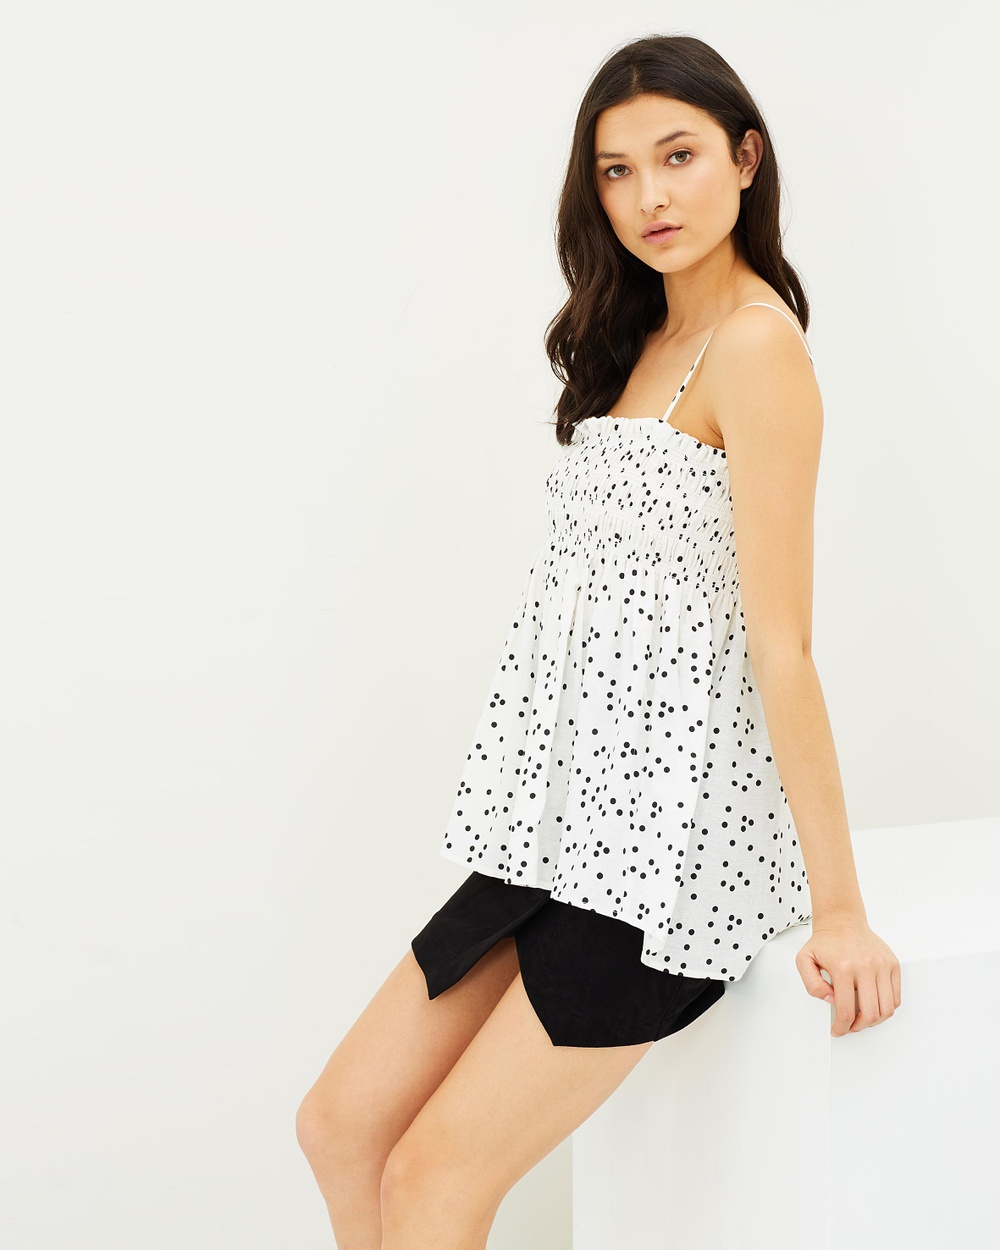 IMONNI Heaven Linen Cotton Camisole Tops Ivory & Black Sport Print Heaven Linen Cotton Camisole